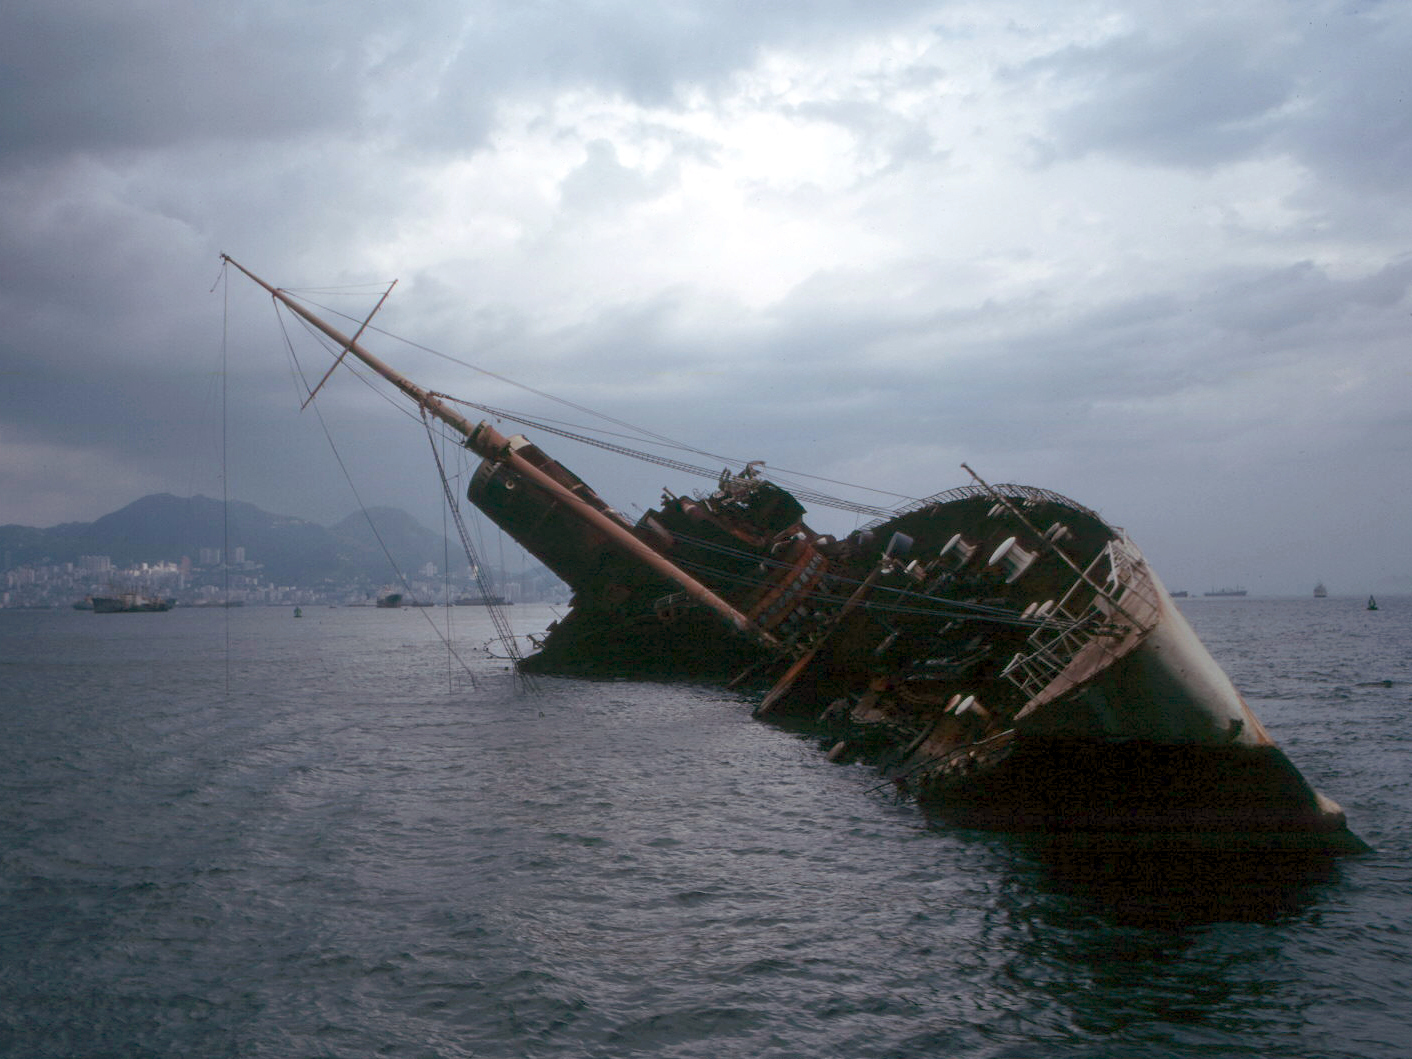 http://upload.wikimedia.org/wikipedia/commons/3/33/Seawise_University_wreck.jpg